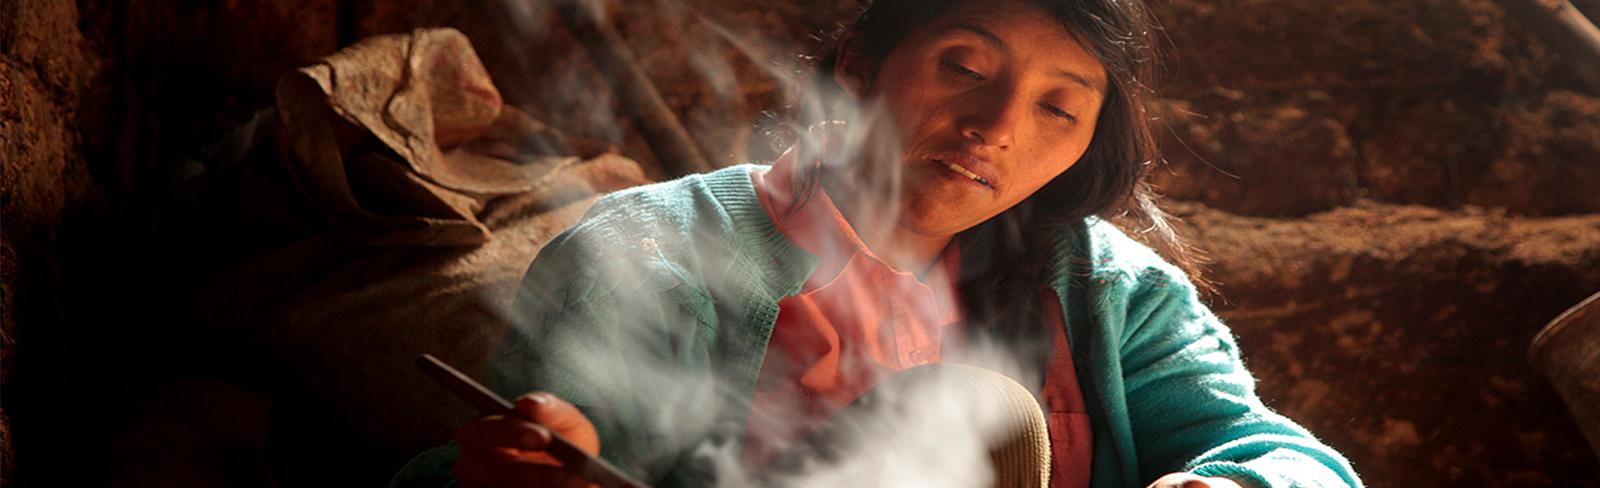 woman cooking, peru